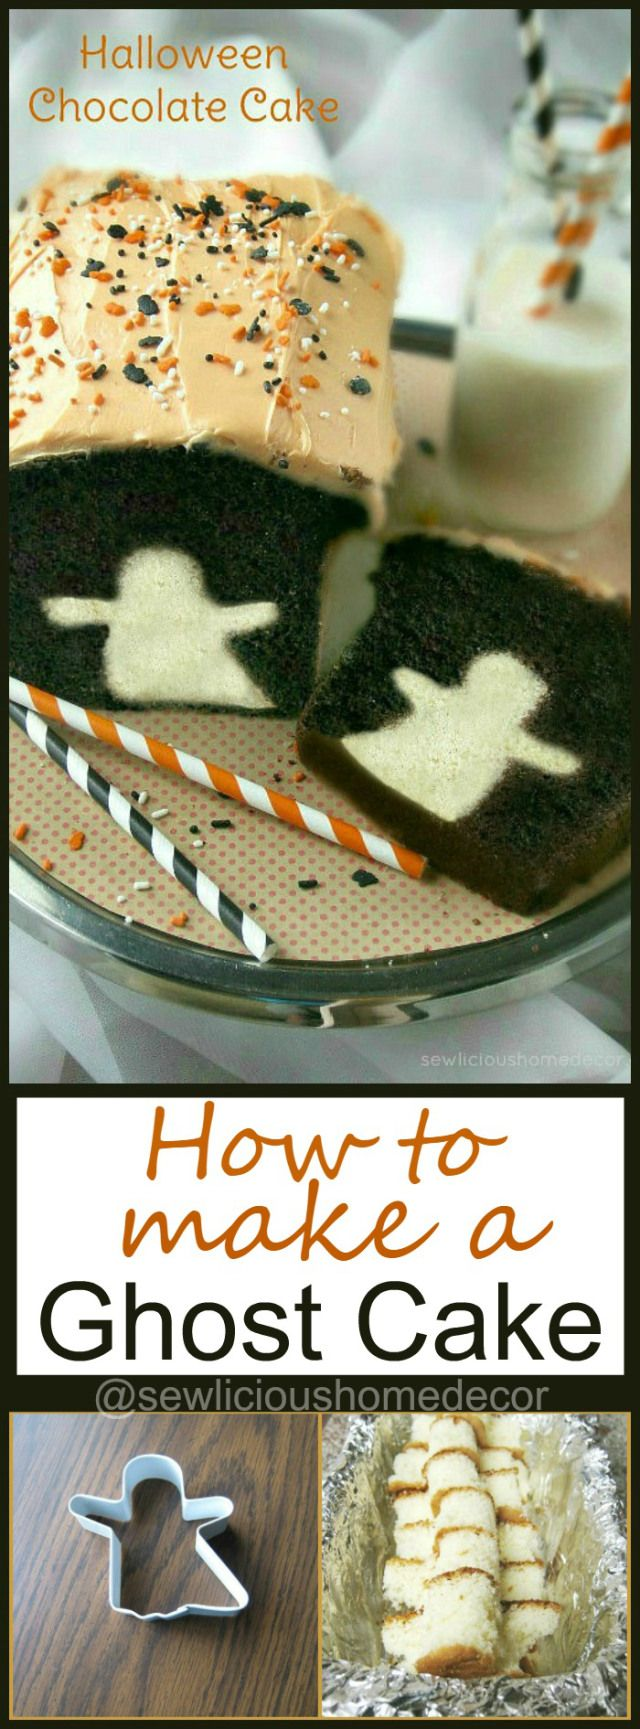 How To Make A Halloween Ghost Cake. sewlicioushomedecor.com